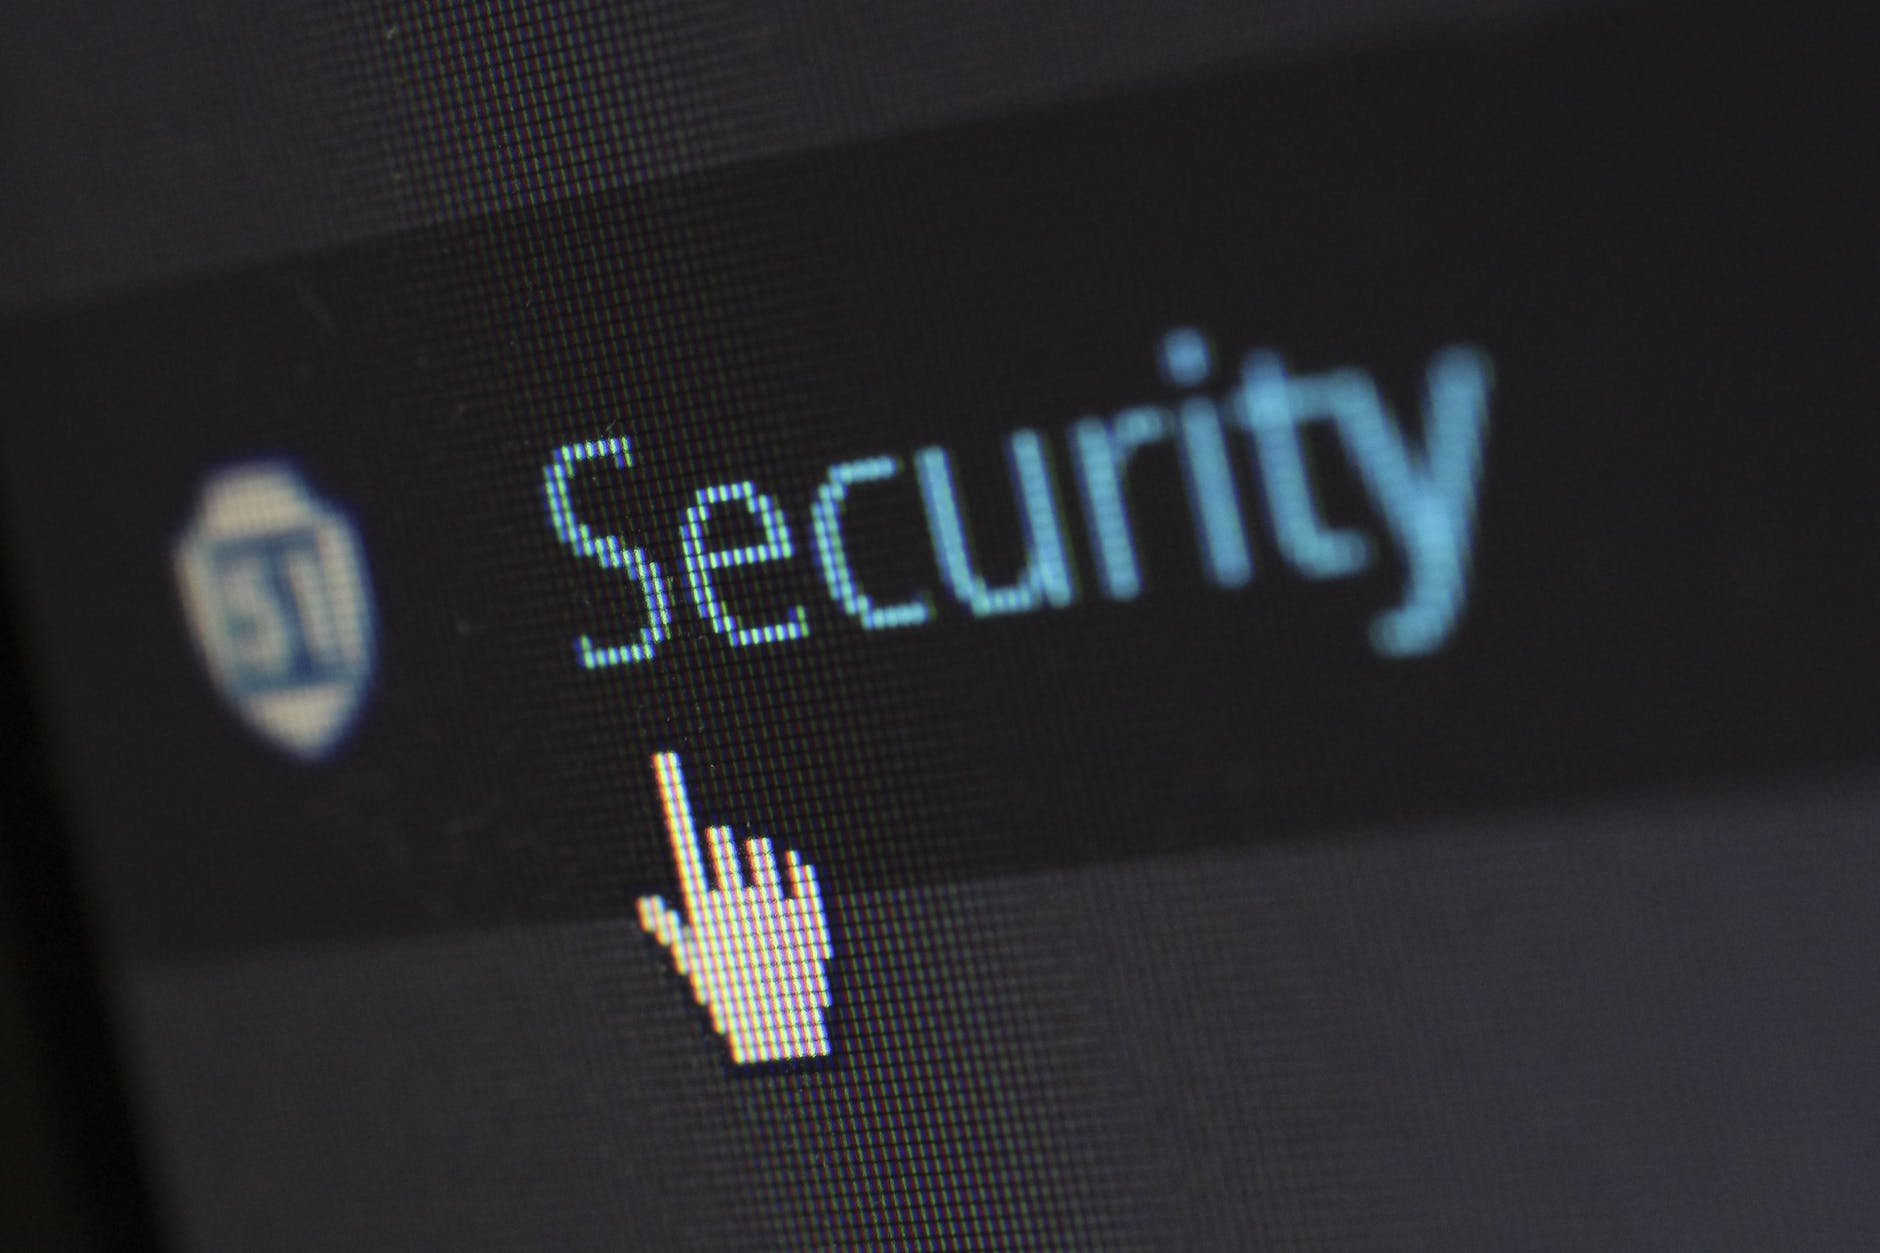 Information Security Training Bolsters your Company's Digital Security Awareness